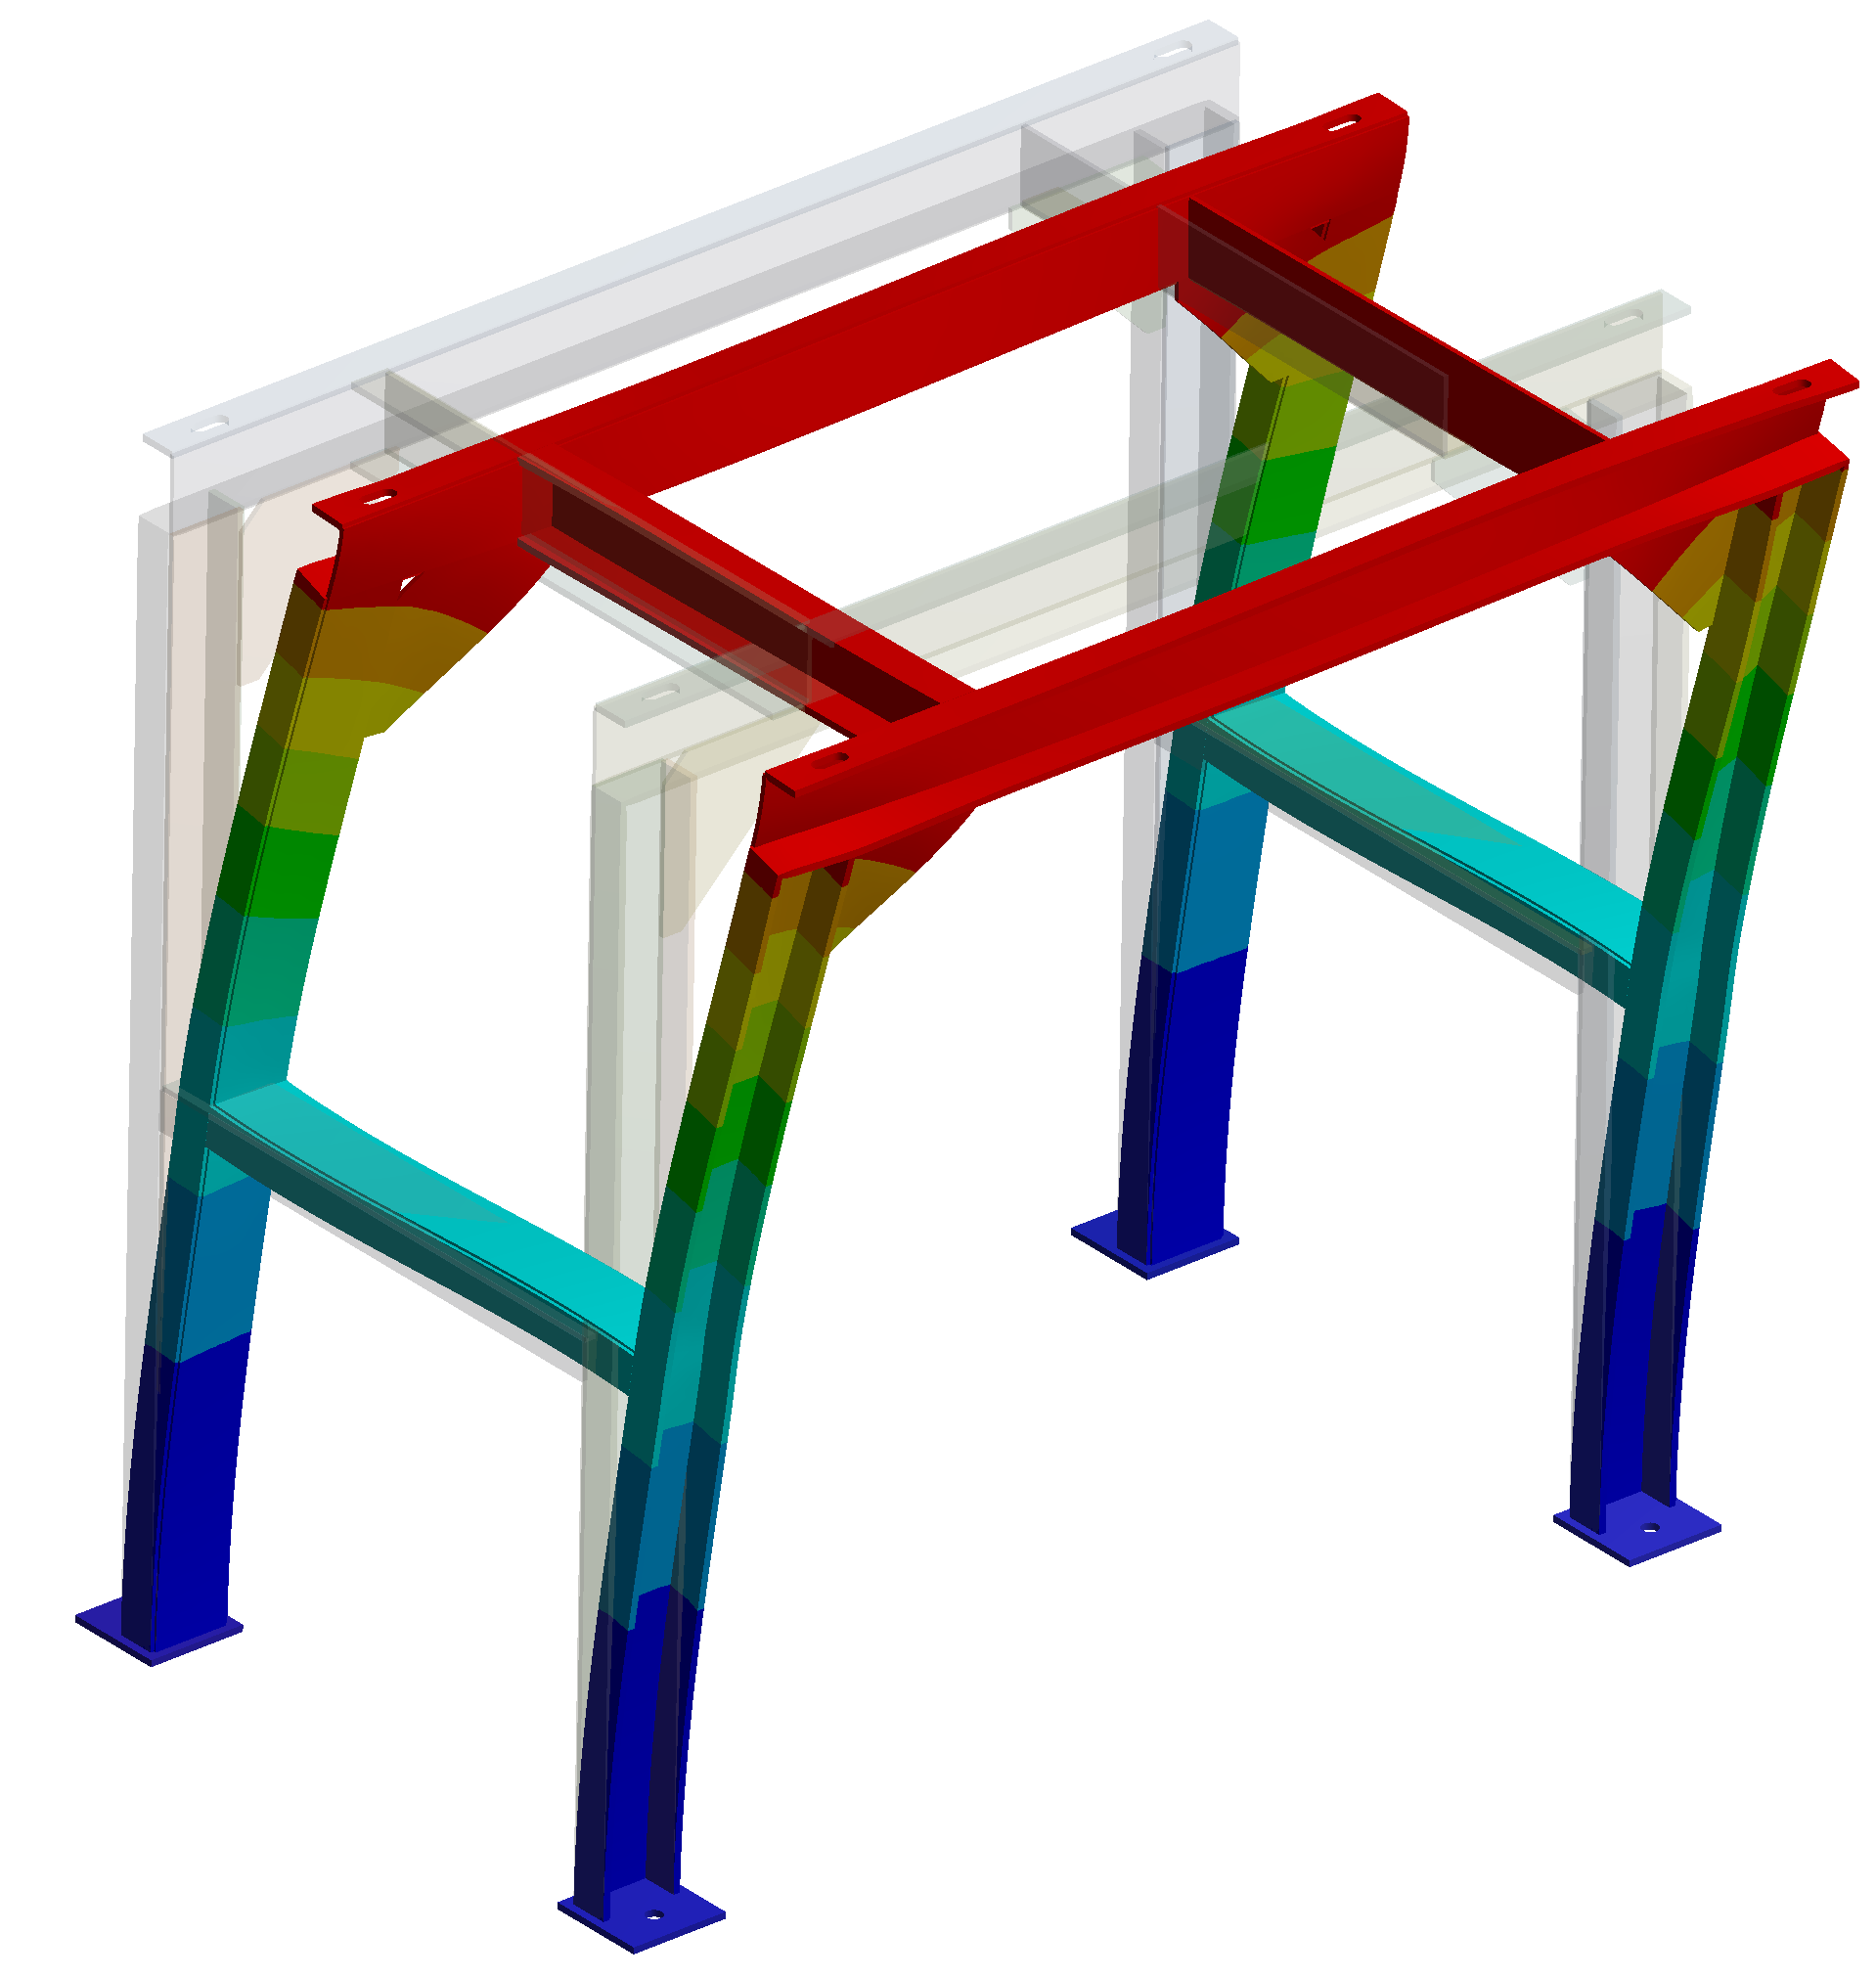 ITER, ANSYS, CEA, iteration, RJH, RCCM, CATHARE, IRSN, EDF, APRR, énergie nucléaire, bureau d'etude, simulation, dispositif, irradiation, séismologie, thermomecanique, transfer thermique, nuclear, nuclear energy, nuclear power plant, nuclear reactor, nuclear engineering, nucléaire France, nucléaire définition, nucléaire énergie fossile, nucléaire civile, nuclear fusion, nuclear acid, nuclear power trio, engineer, engineer data, engineer electrical, engineer jobs, engineer design process, engineer tf2, case study case study example, naval, naval ship, naval news, naval groupe, naval group cherbourg, naval groupe ollioules, naval group news, naval energies, naval craft, CFD, Open source, build, marine, industry process,